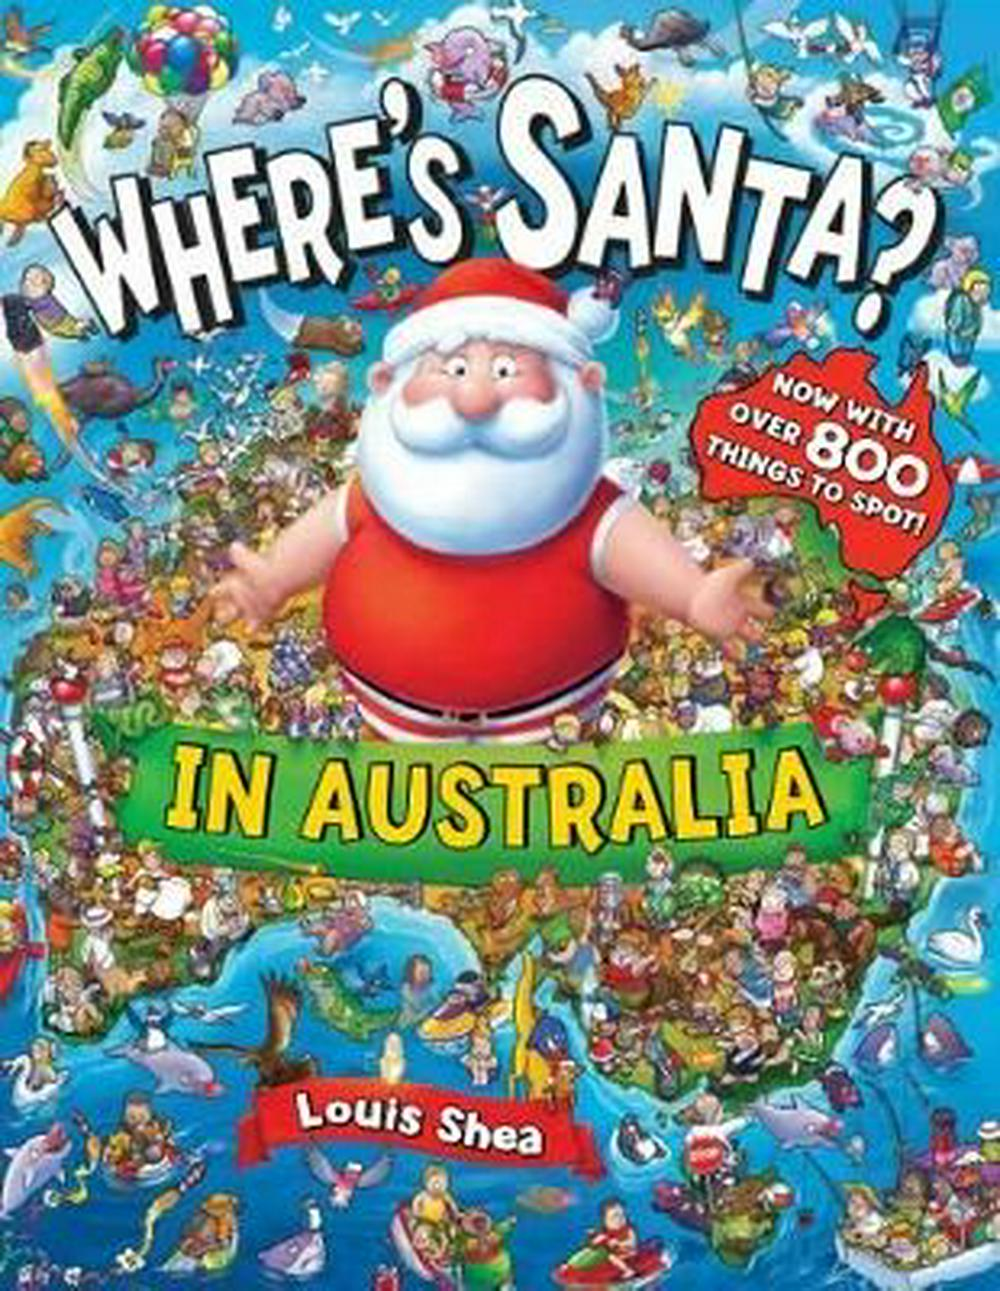 Where's Santa? In Australia NEW EDITION